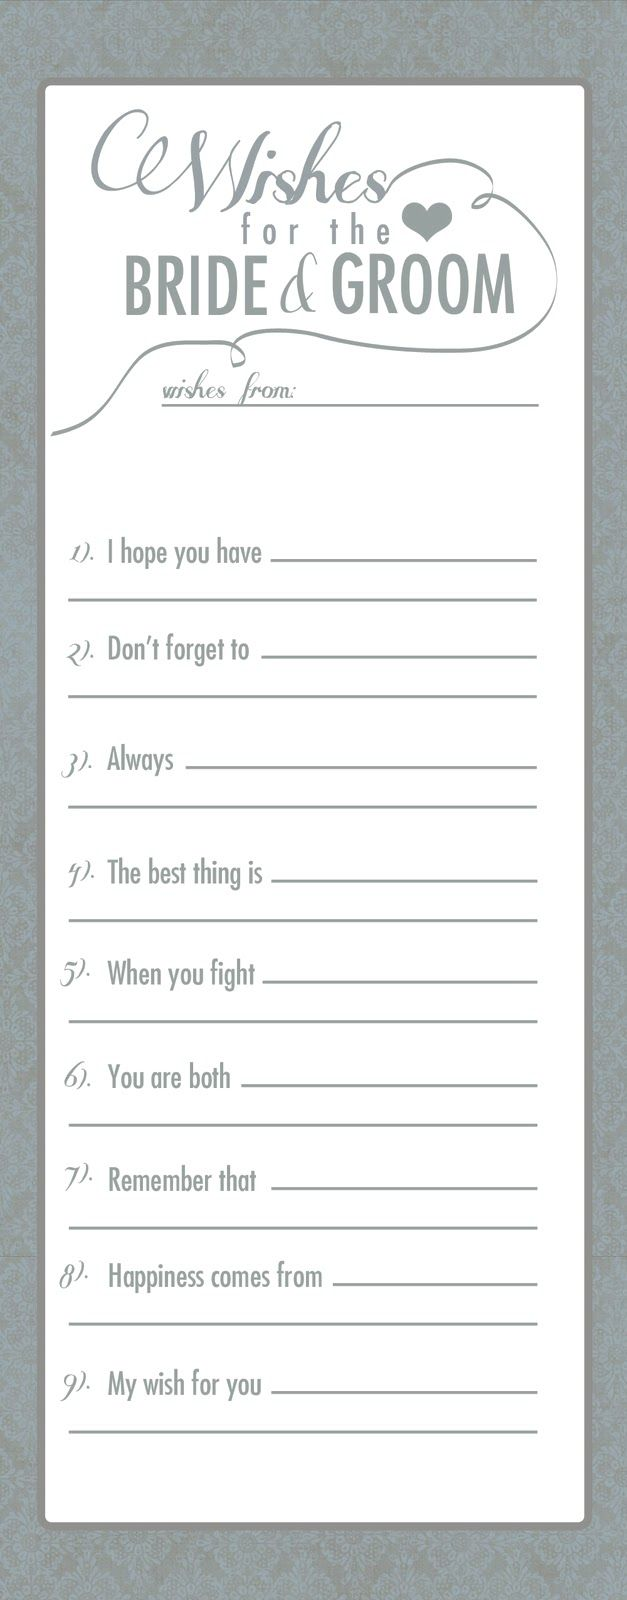 please fill out an advice card for amber and joe and put it